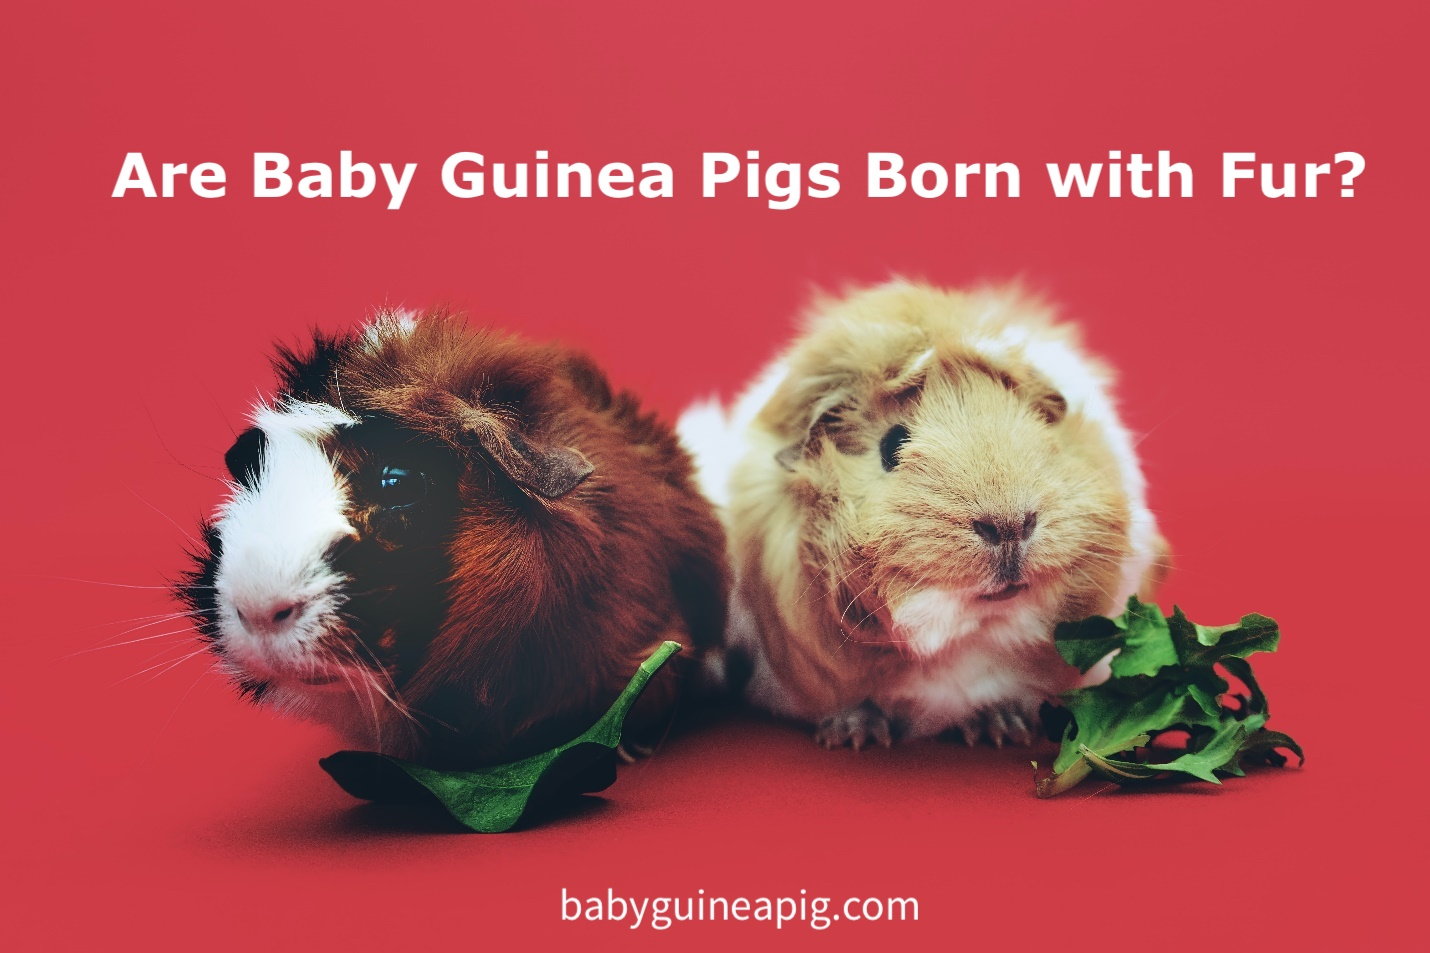 Are Baby Guinea Pigs Born with Fur